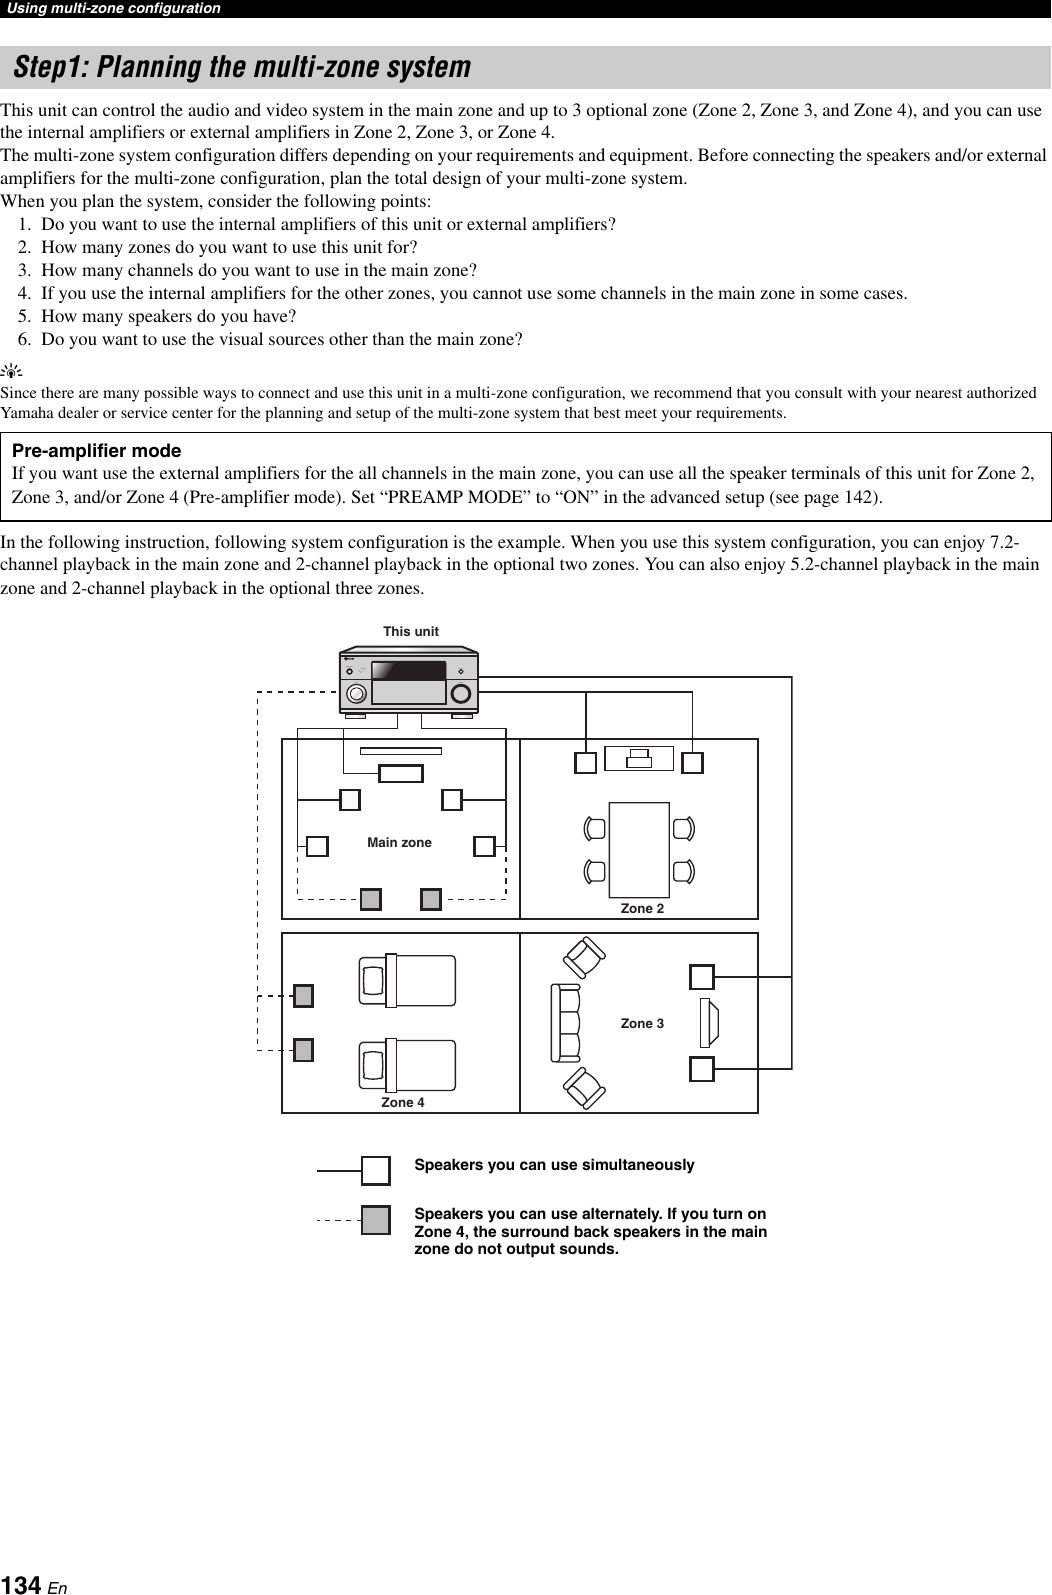 Yamaha Rx Z11 Owners Manual